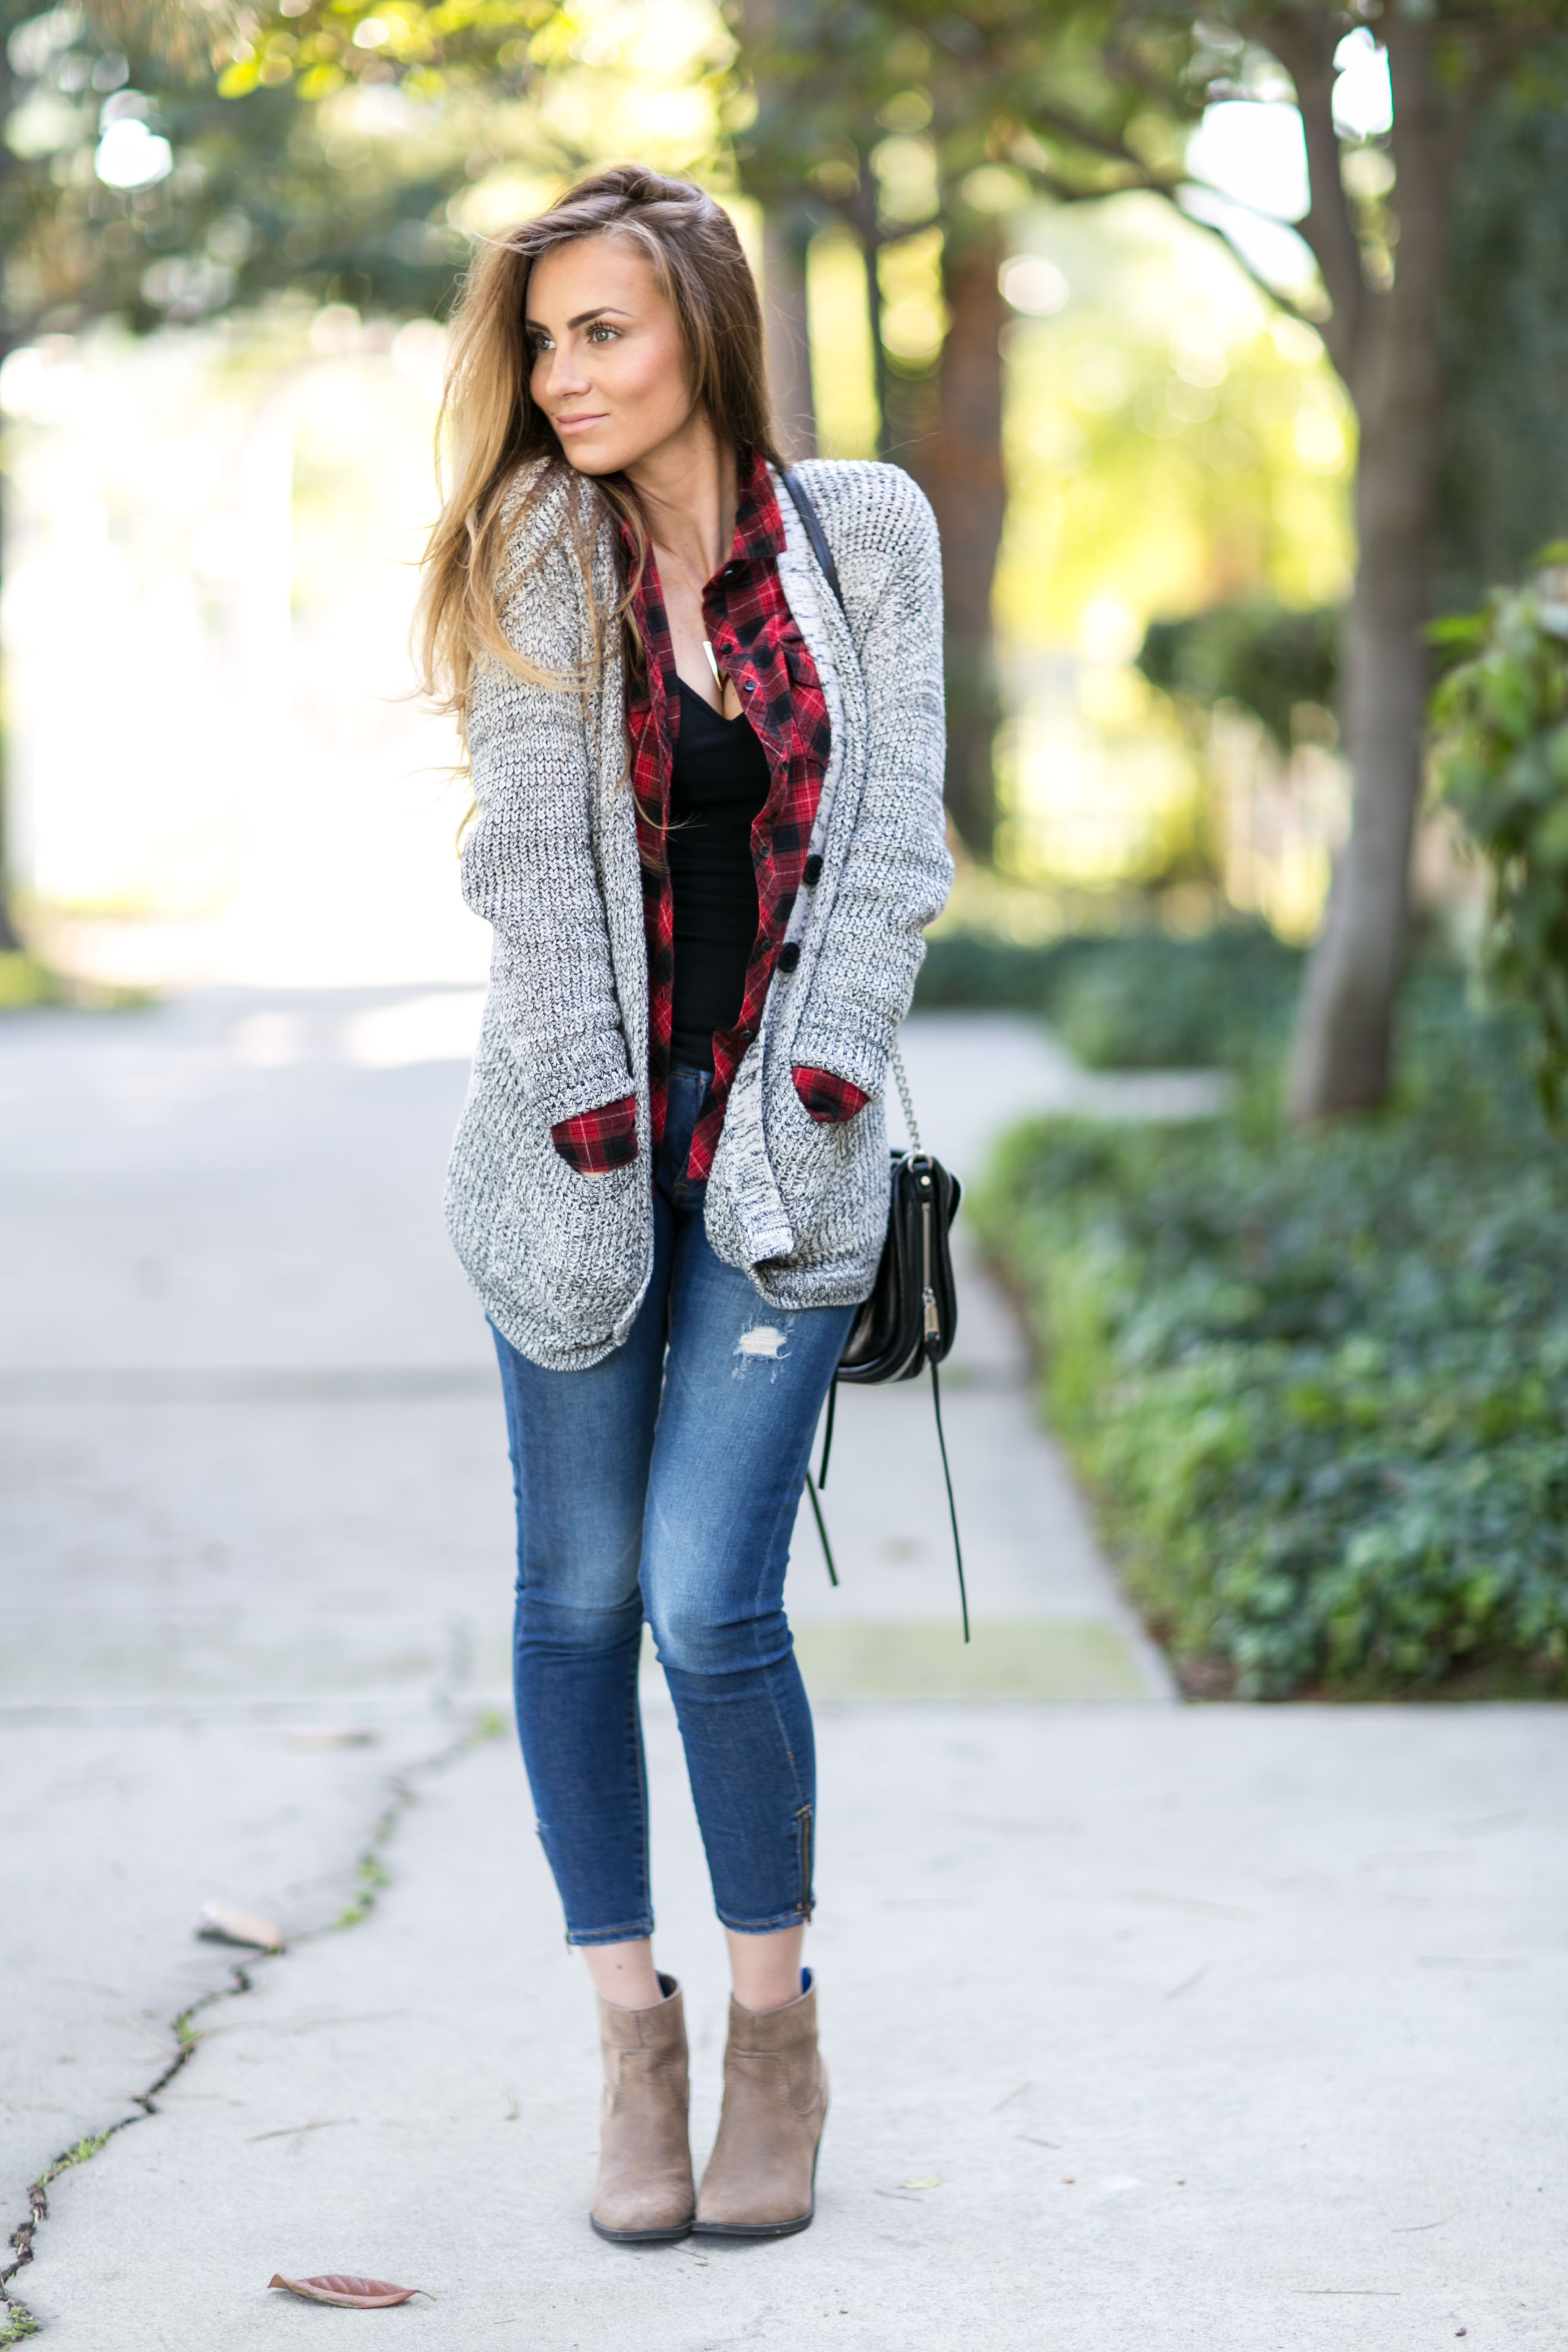 10 Most Popular Fall Outfits On Pinterest - Hello Gorgeous By Angela Lanter